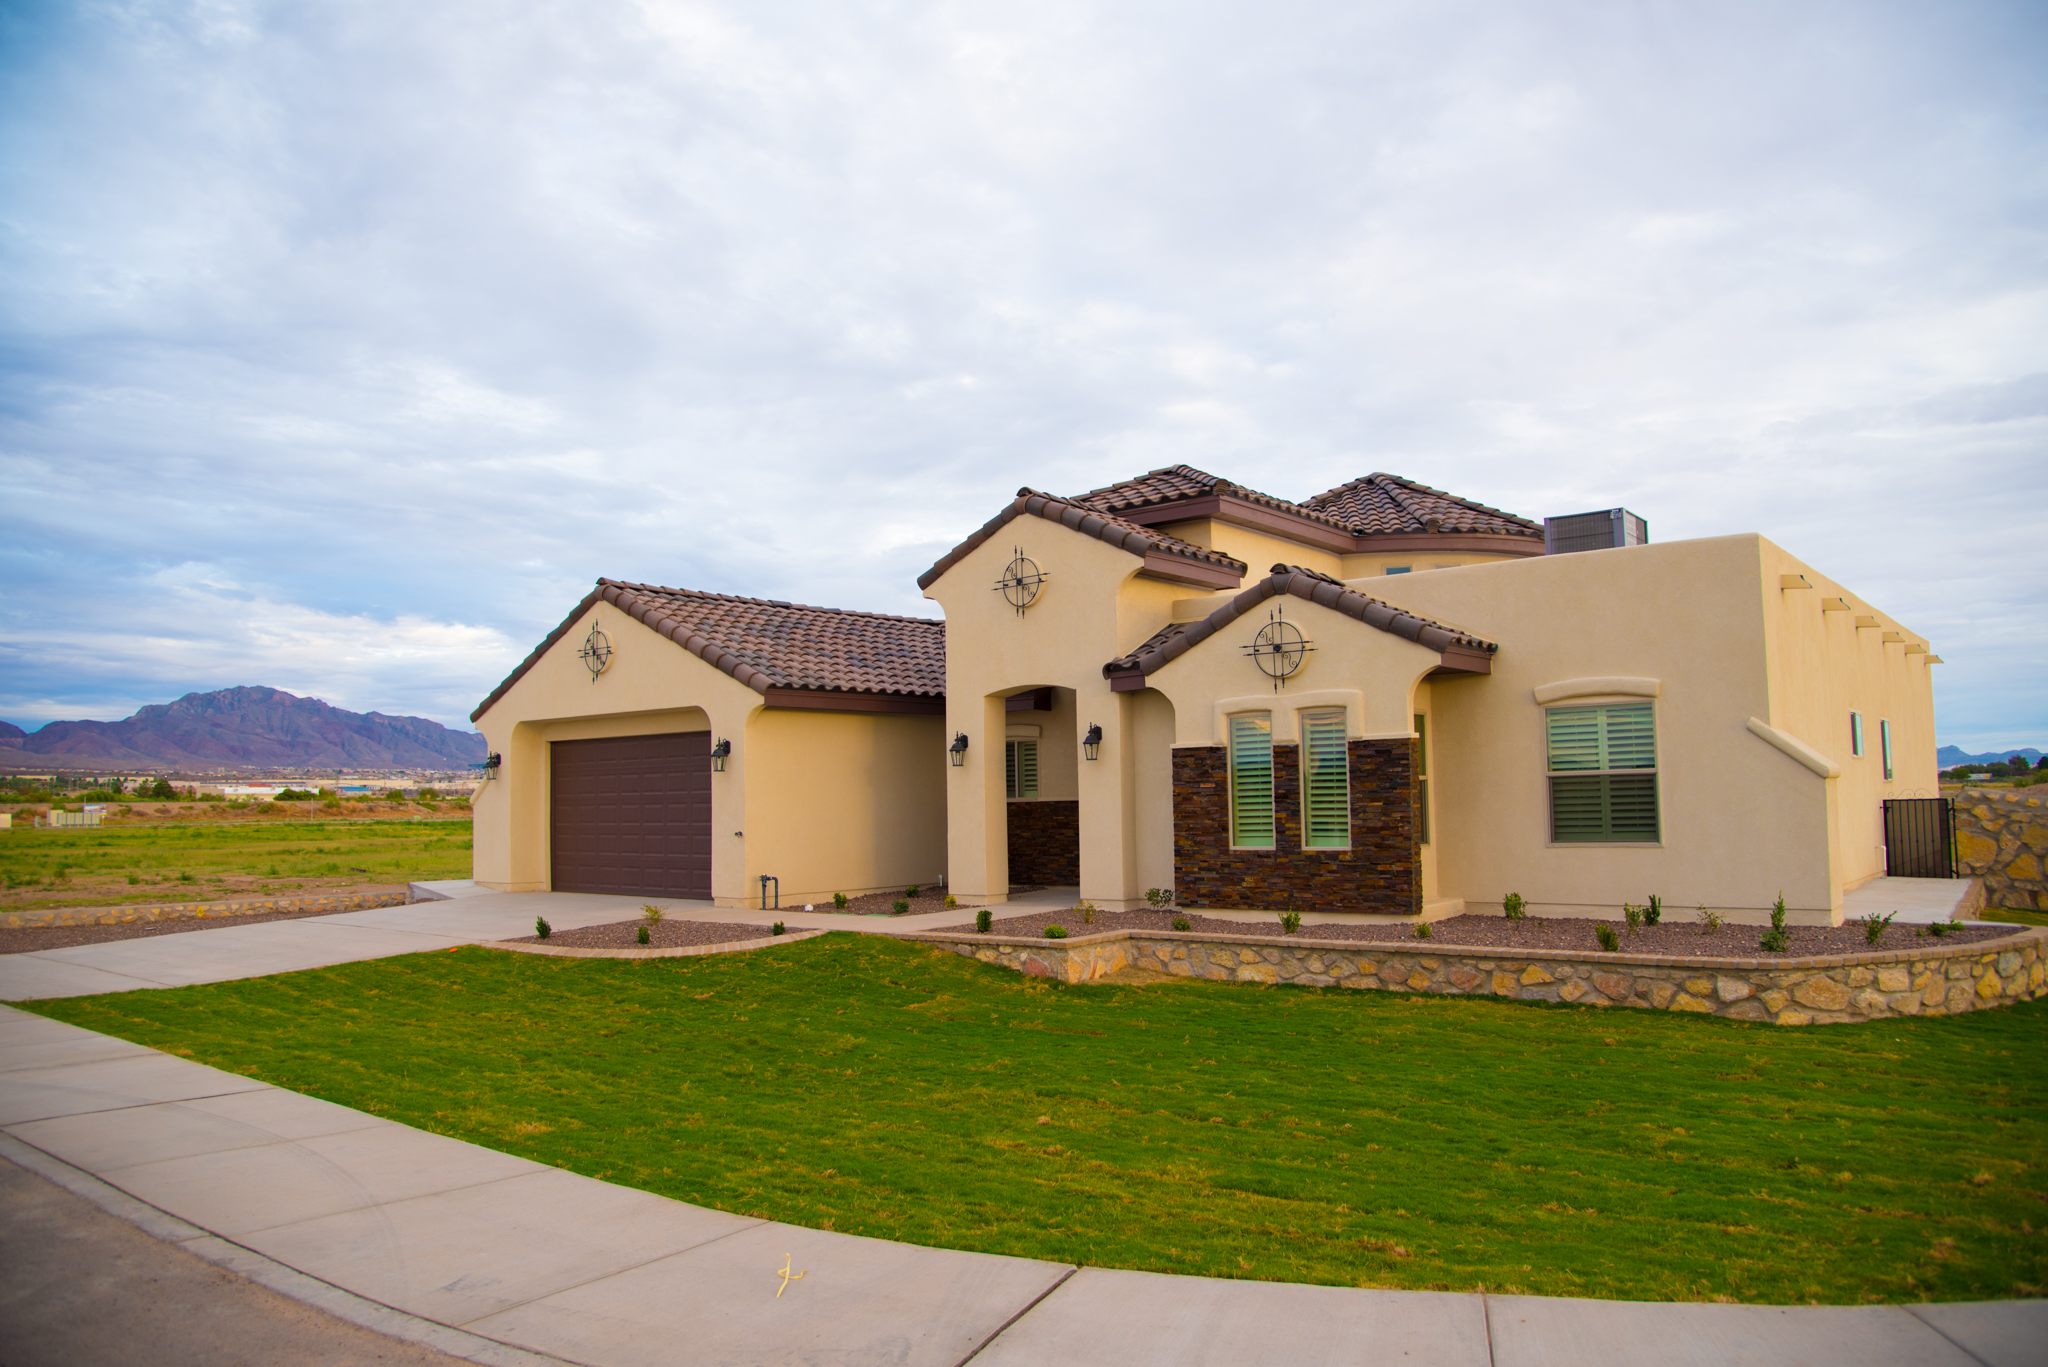 El paso custom homes padilla homes murcia haciendas for Housing builders